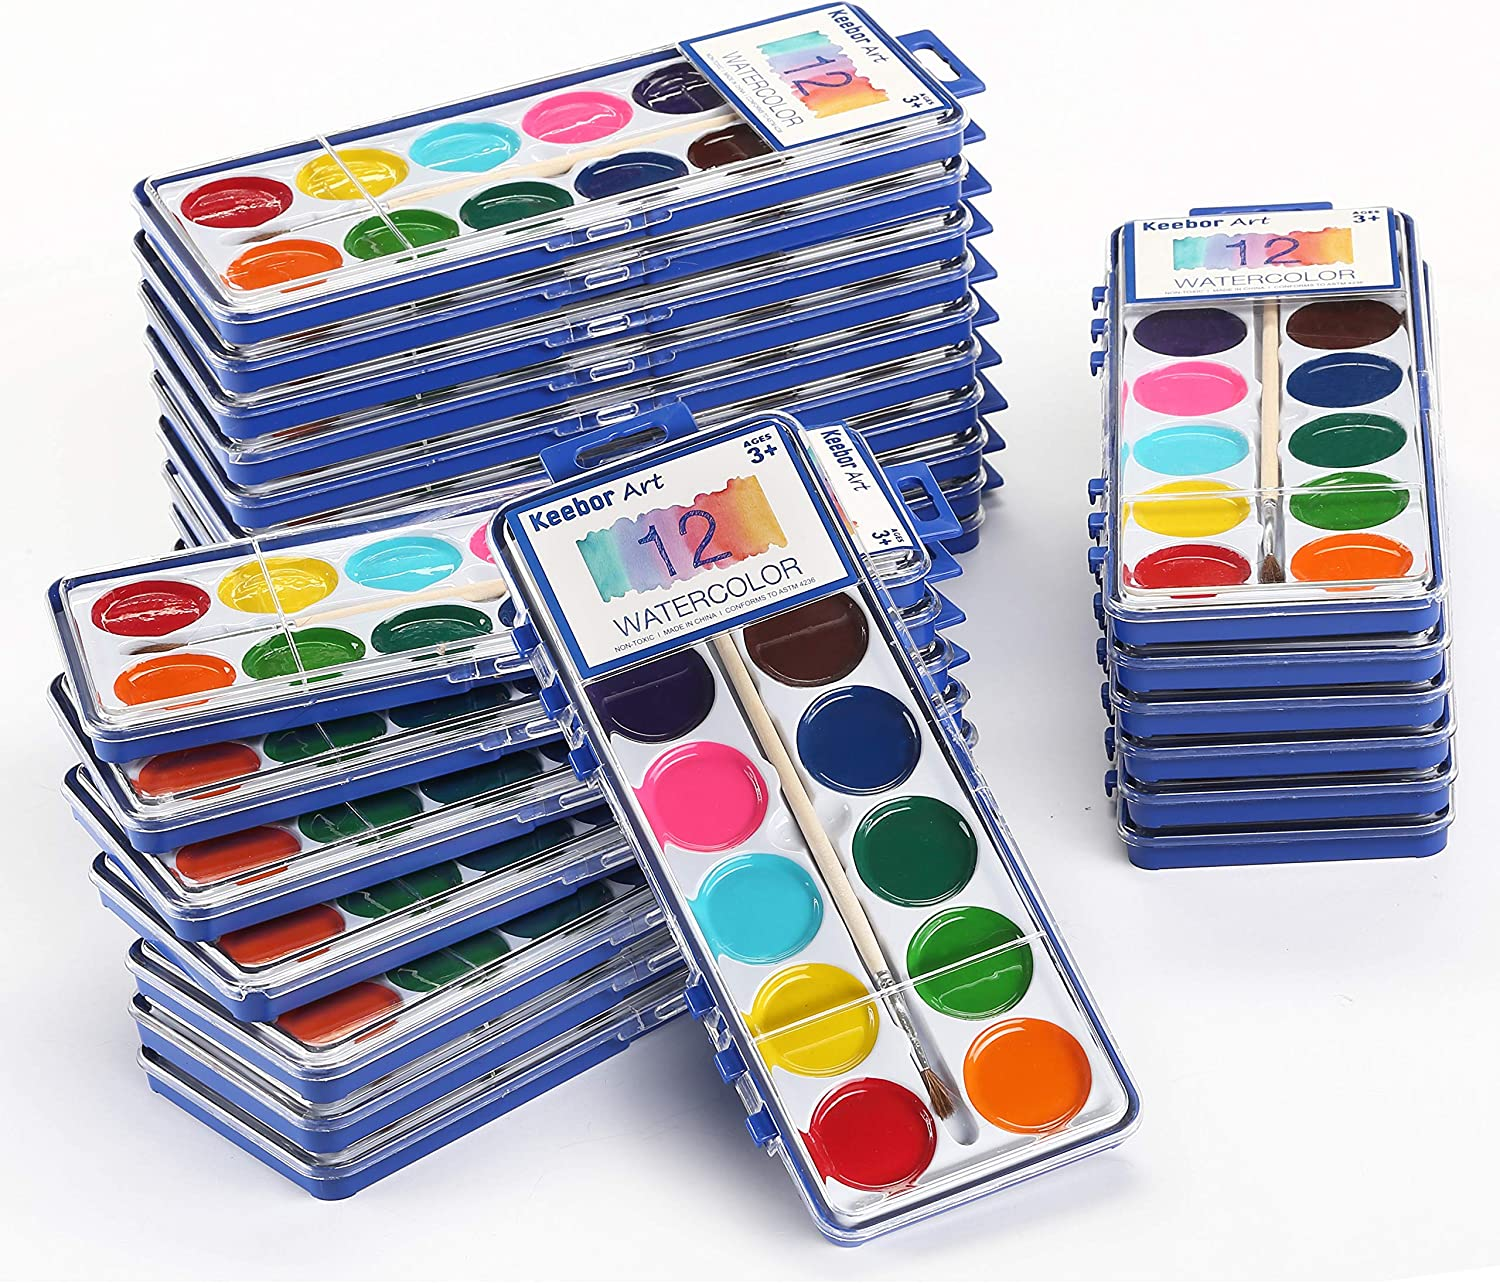 Amazon Com Keebor Basic 12 Colors Washable Watercolor Paint Bulk Set Of 24 With Wood Brushes For Kids Toys Games